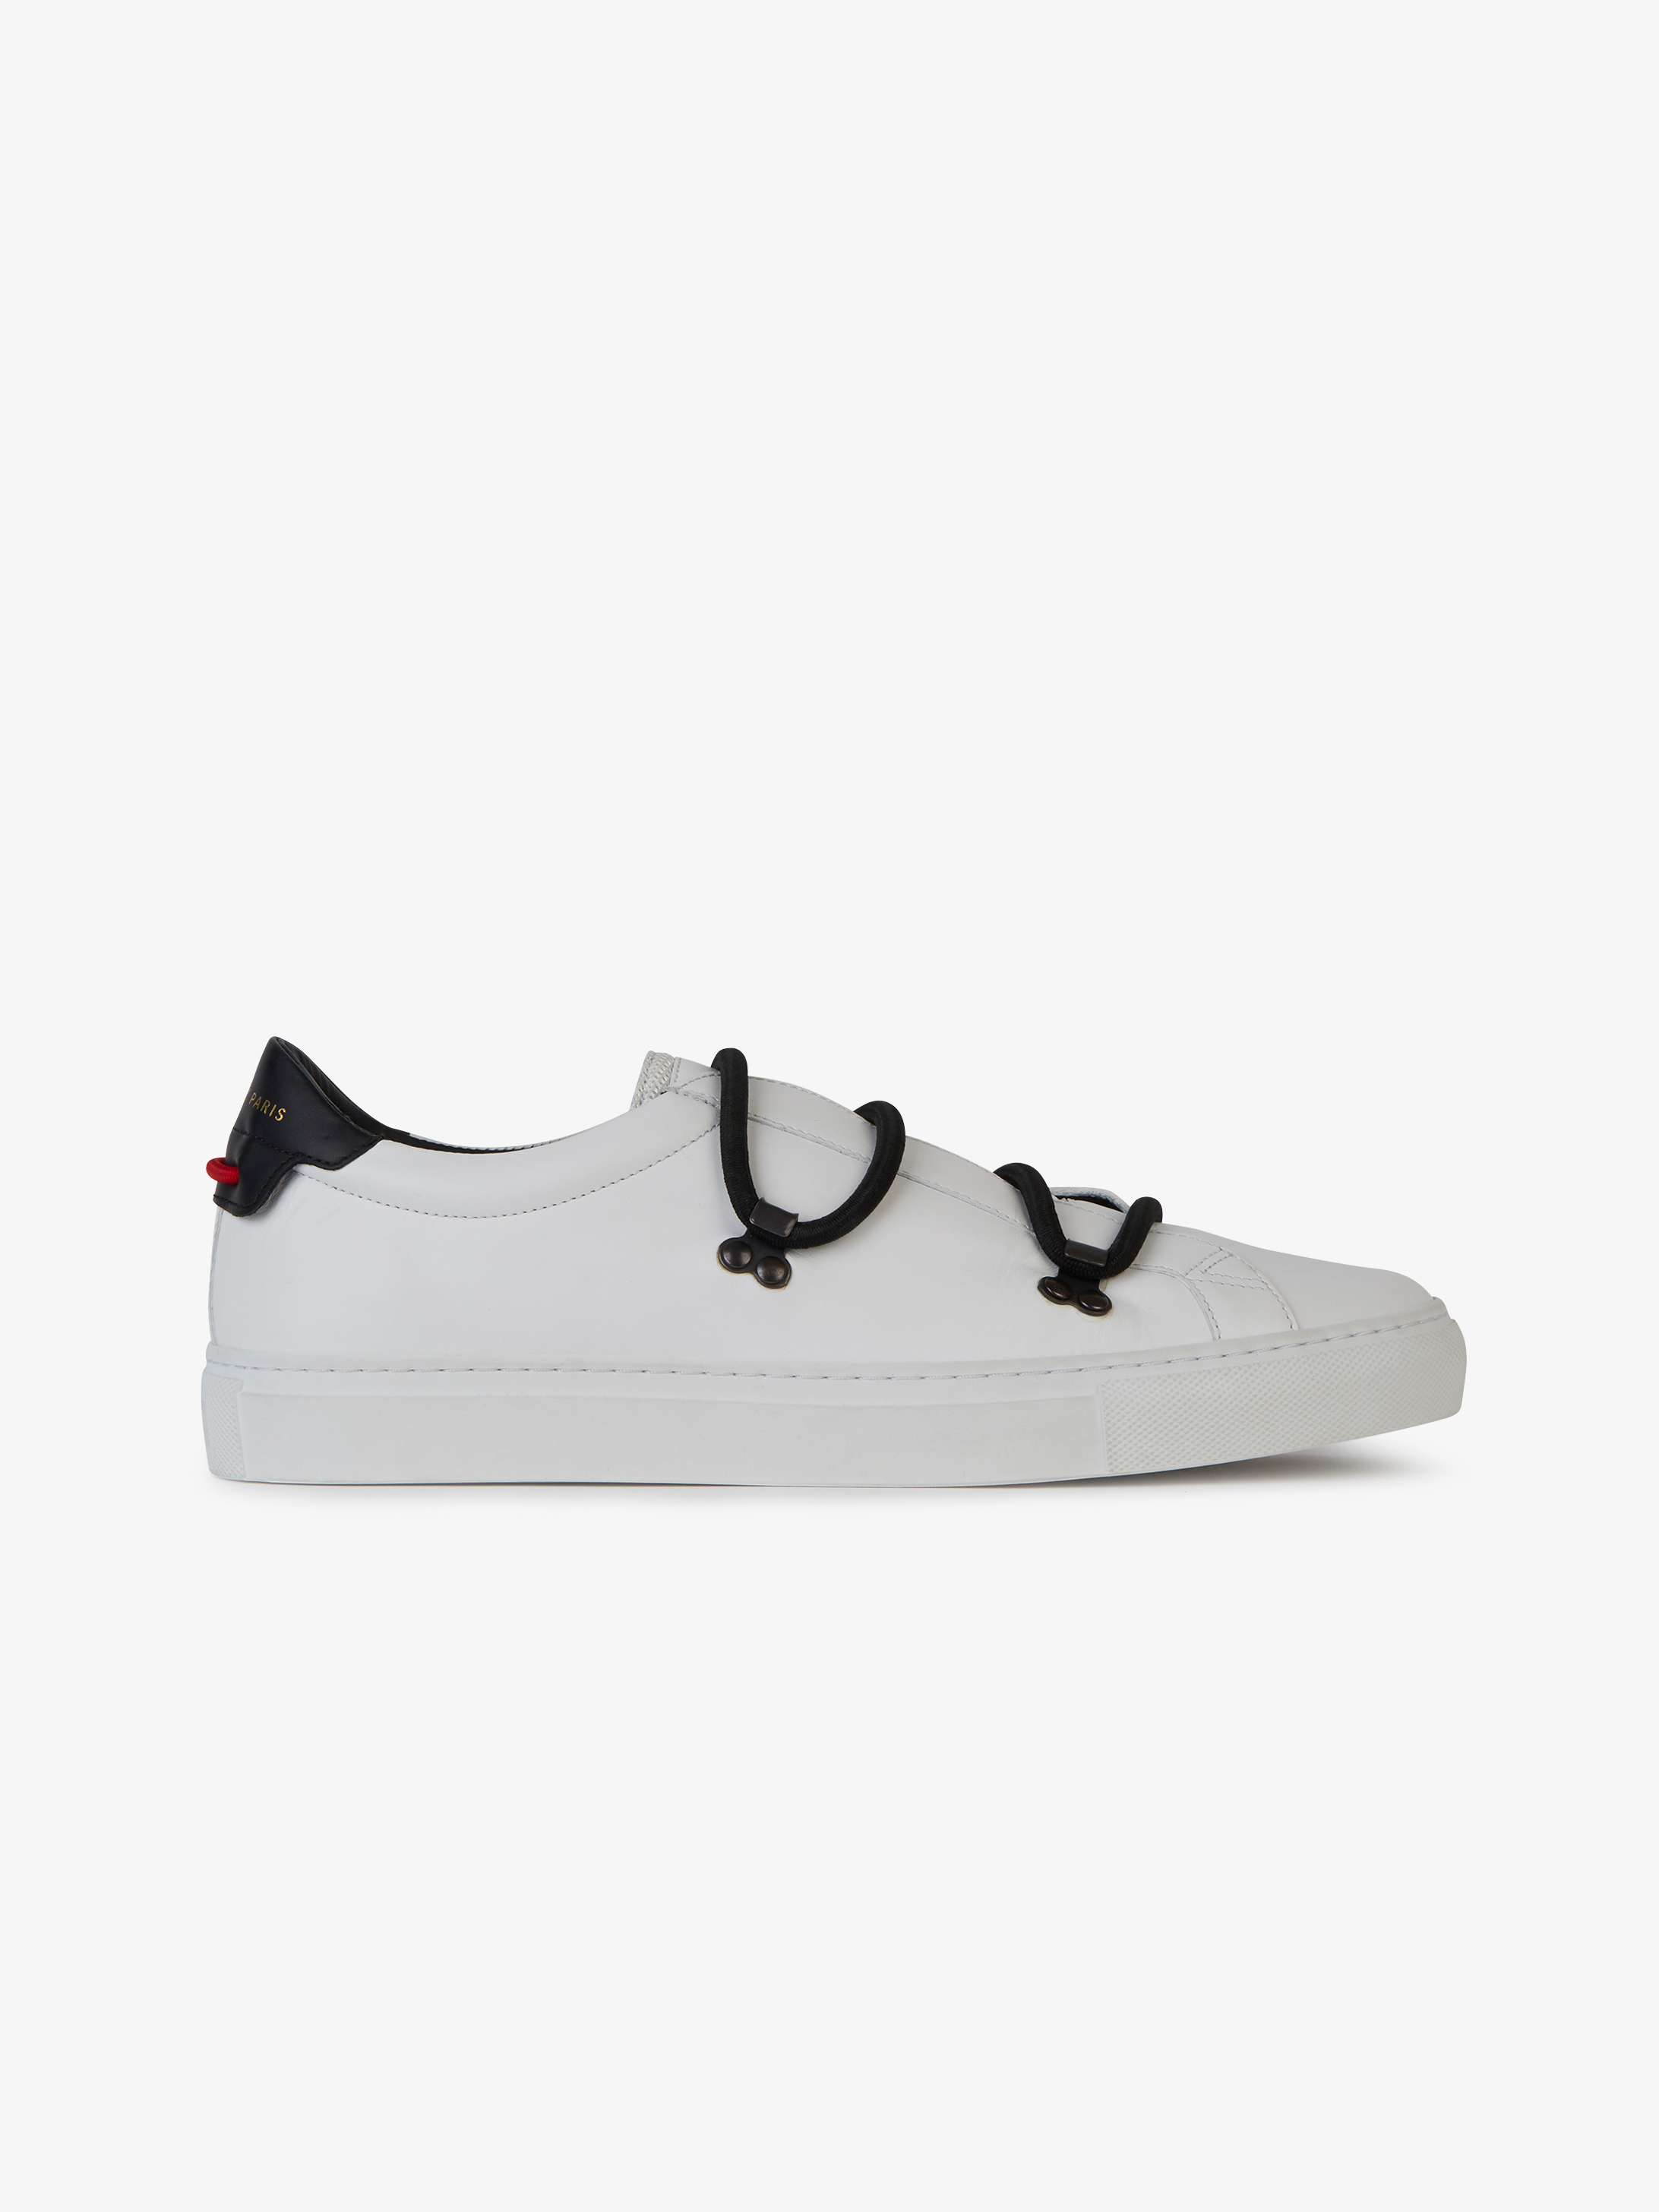 Low sneakers in bicolor mat leather